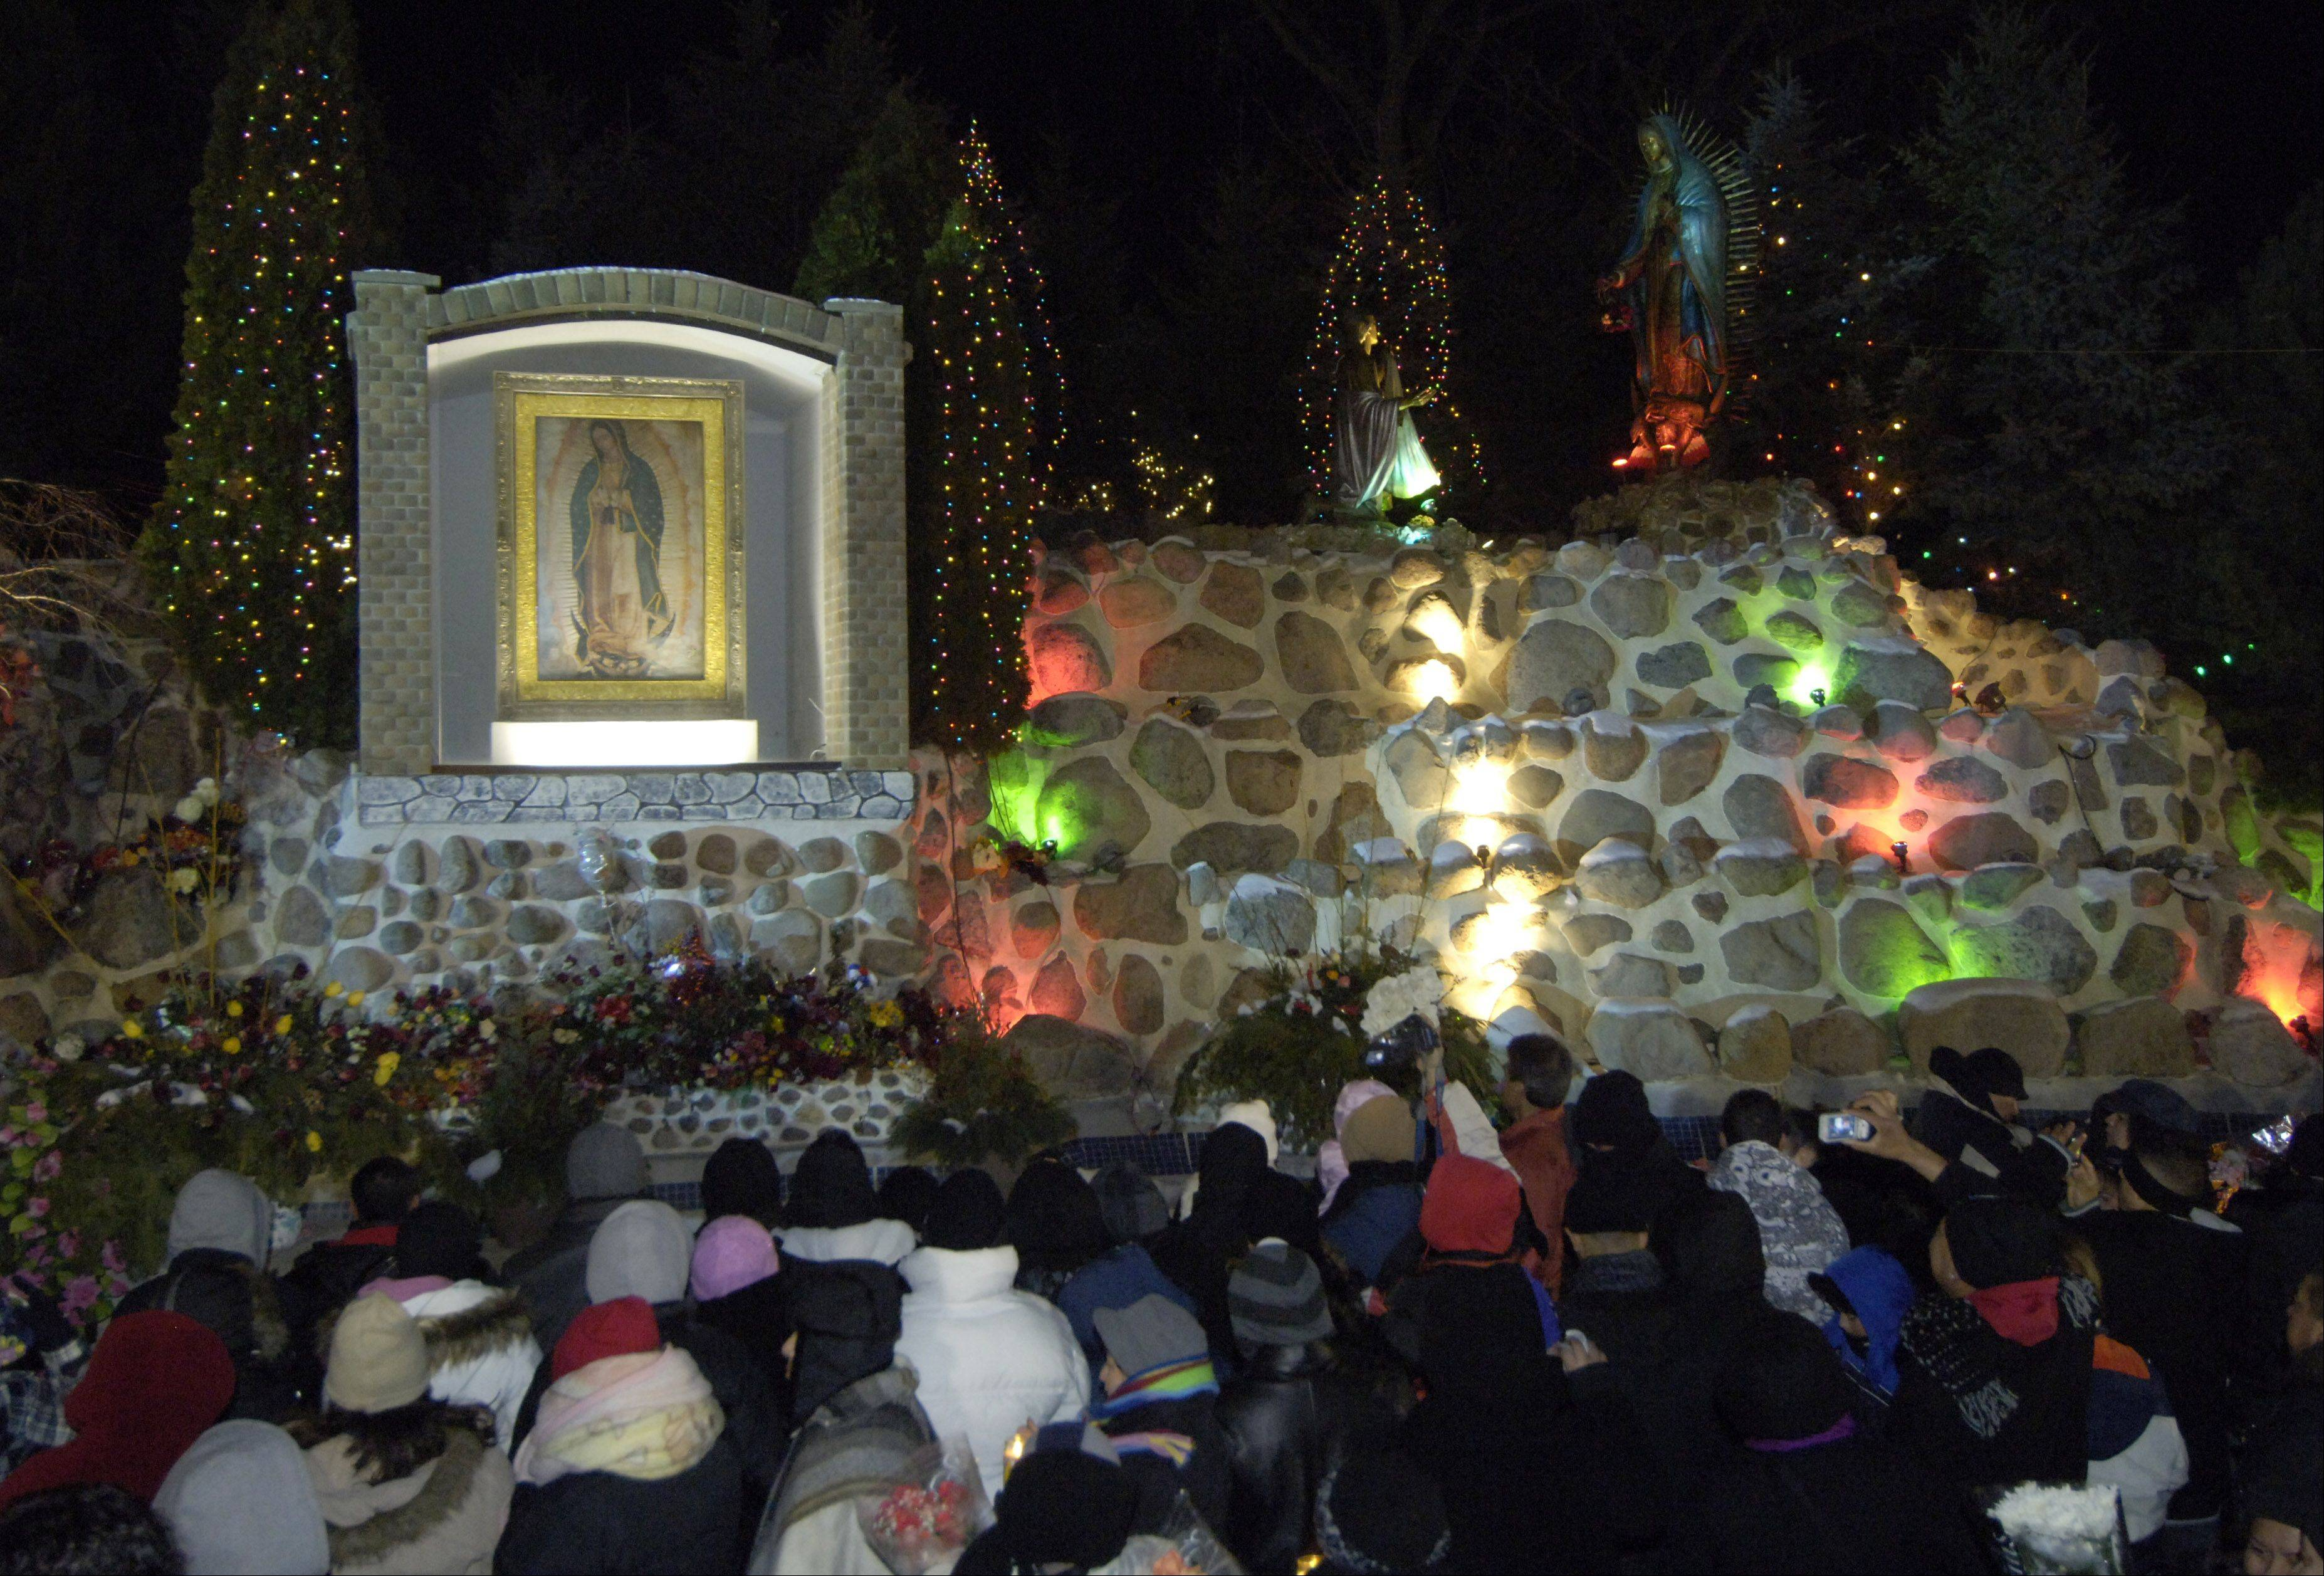 The annual Our Lady of Guadalupe celebration today is expected to draw as many as 100,000 Catholic pilgrims to the Maryville in Des Plaines. Police will be closing nearby roads during the two-day celebration.